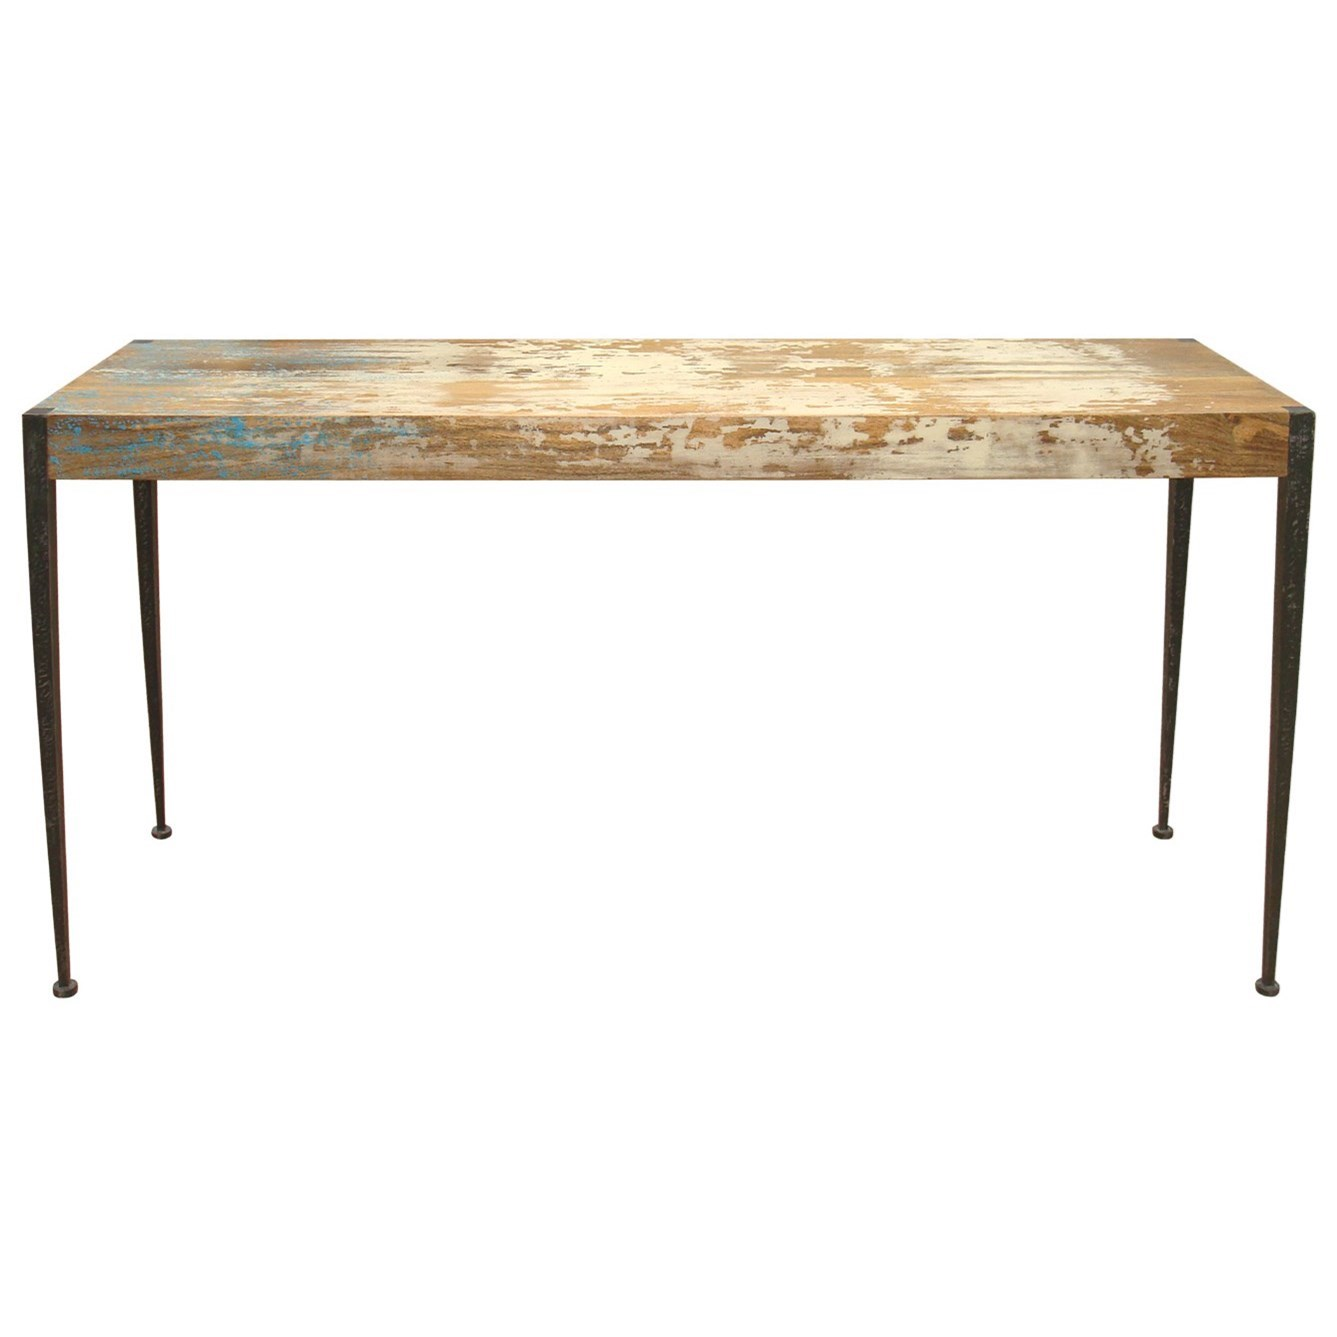 Moe's Home Collection Astoria  Console Table   - Item Number: AX-1002-37